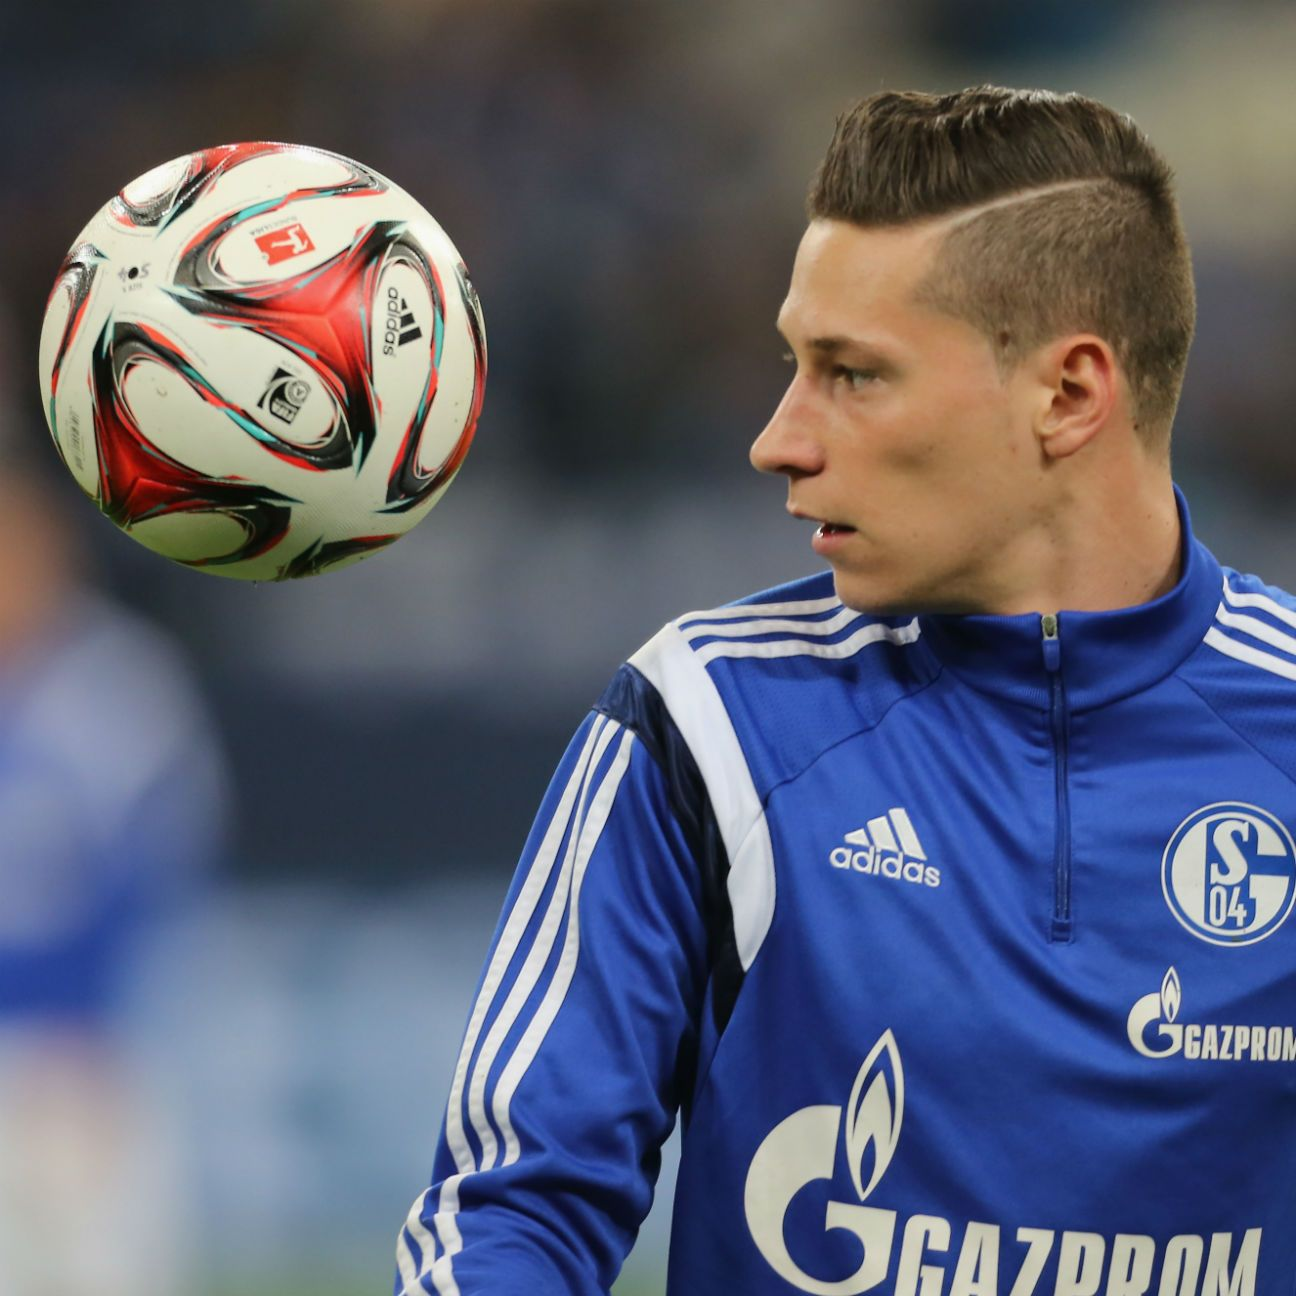 Julian Draxler appeared in 15 Bundesliga matches in 2014-15 for Schalke.